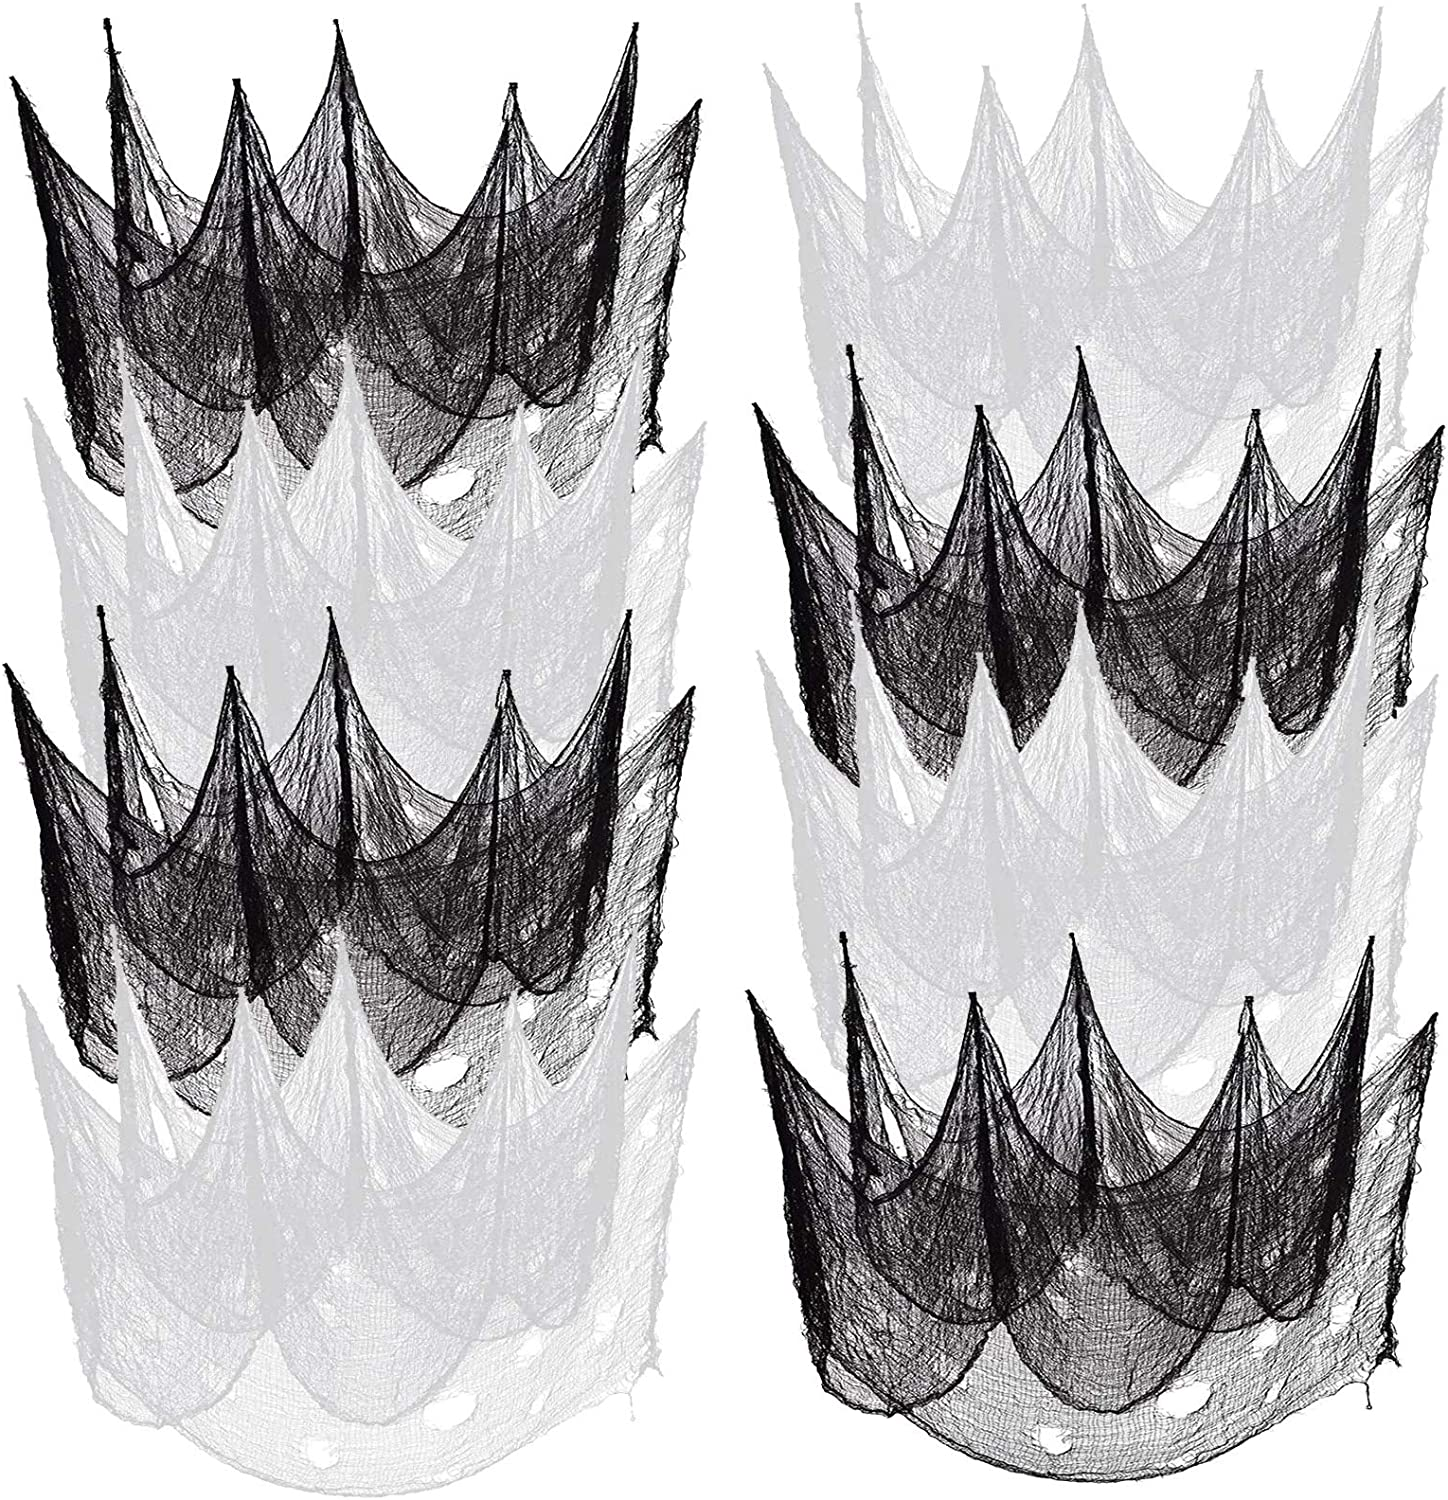 Marggle 8 Pack Halloween Creepy Cloth 30 x78 Inch, Scary Gauze Cloth Doorways Fabric Scary Spooky Halloween Decorations for Outdoor Yard Home Party Wall Decor (4 Black + 4 White)